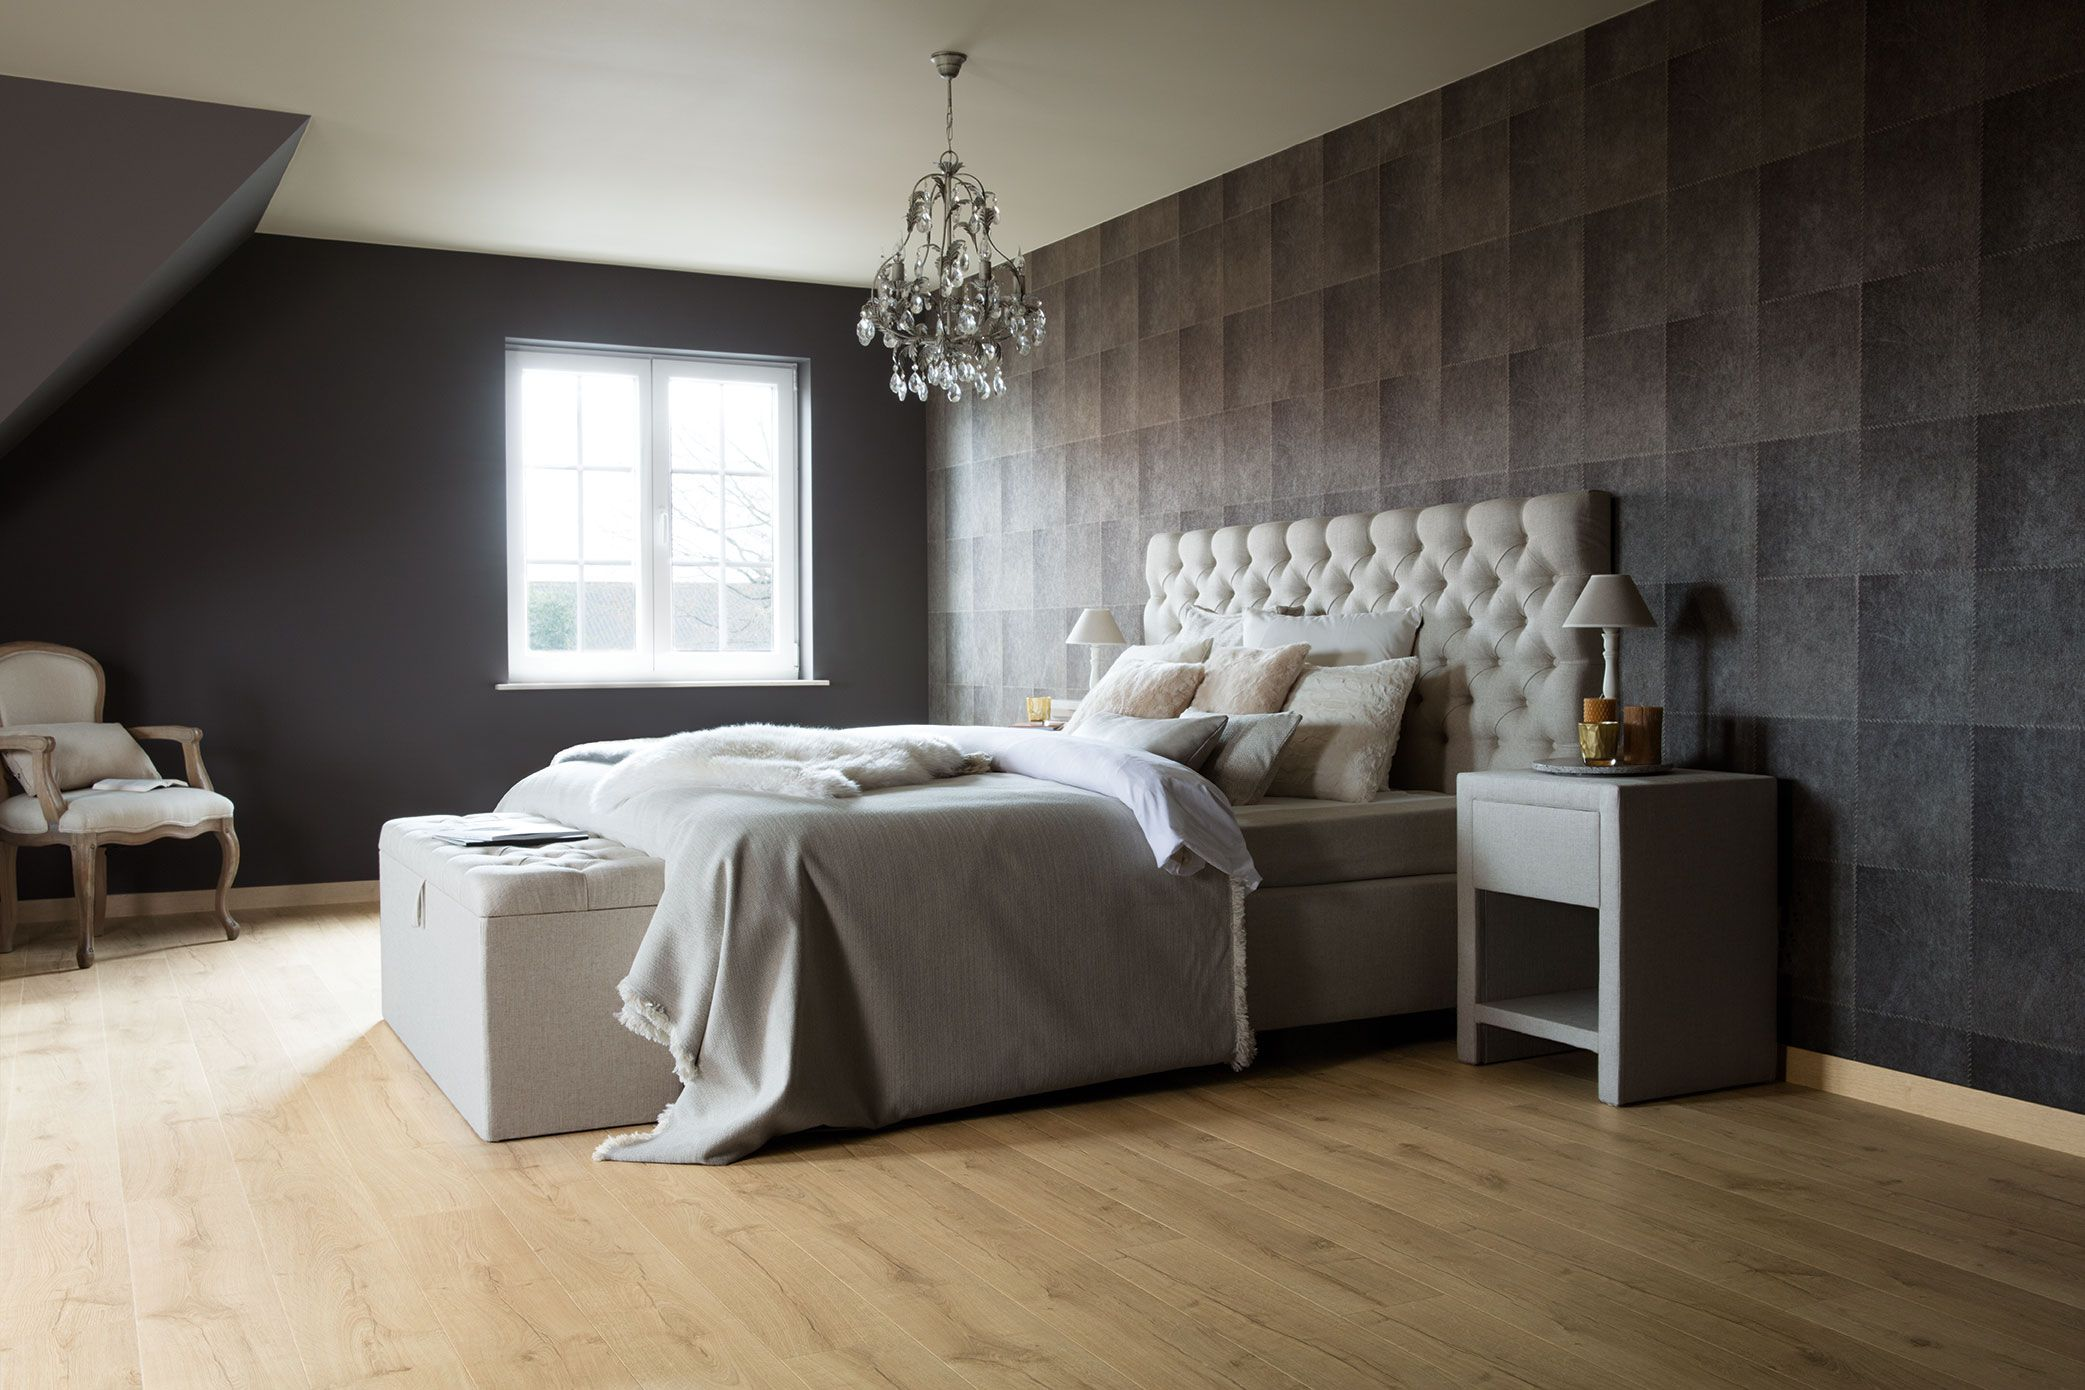 How To Find The Bedroom Flooring Of Your Dreams Bedroom Flooring Options Best Flooring Bedroom Flooring